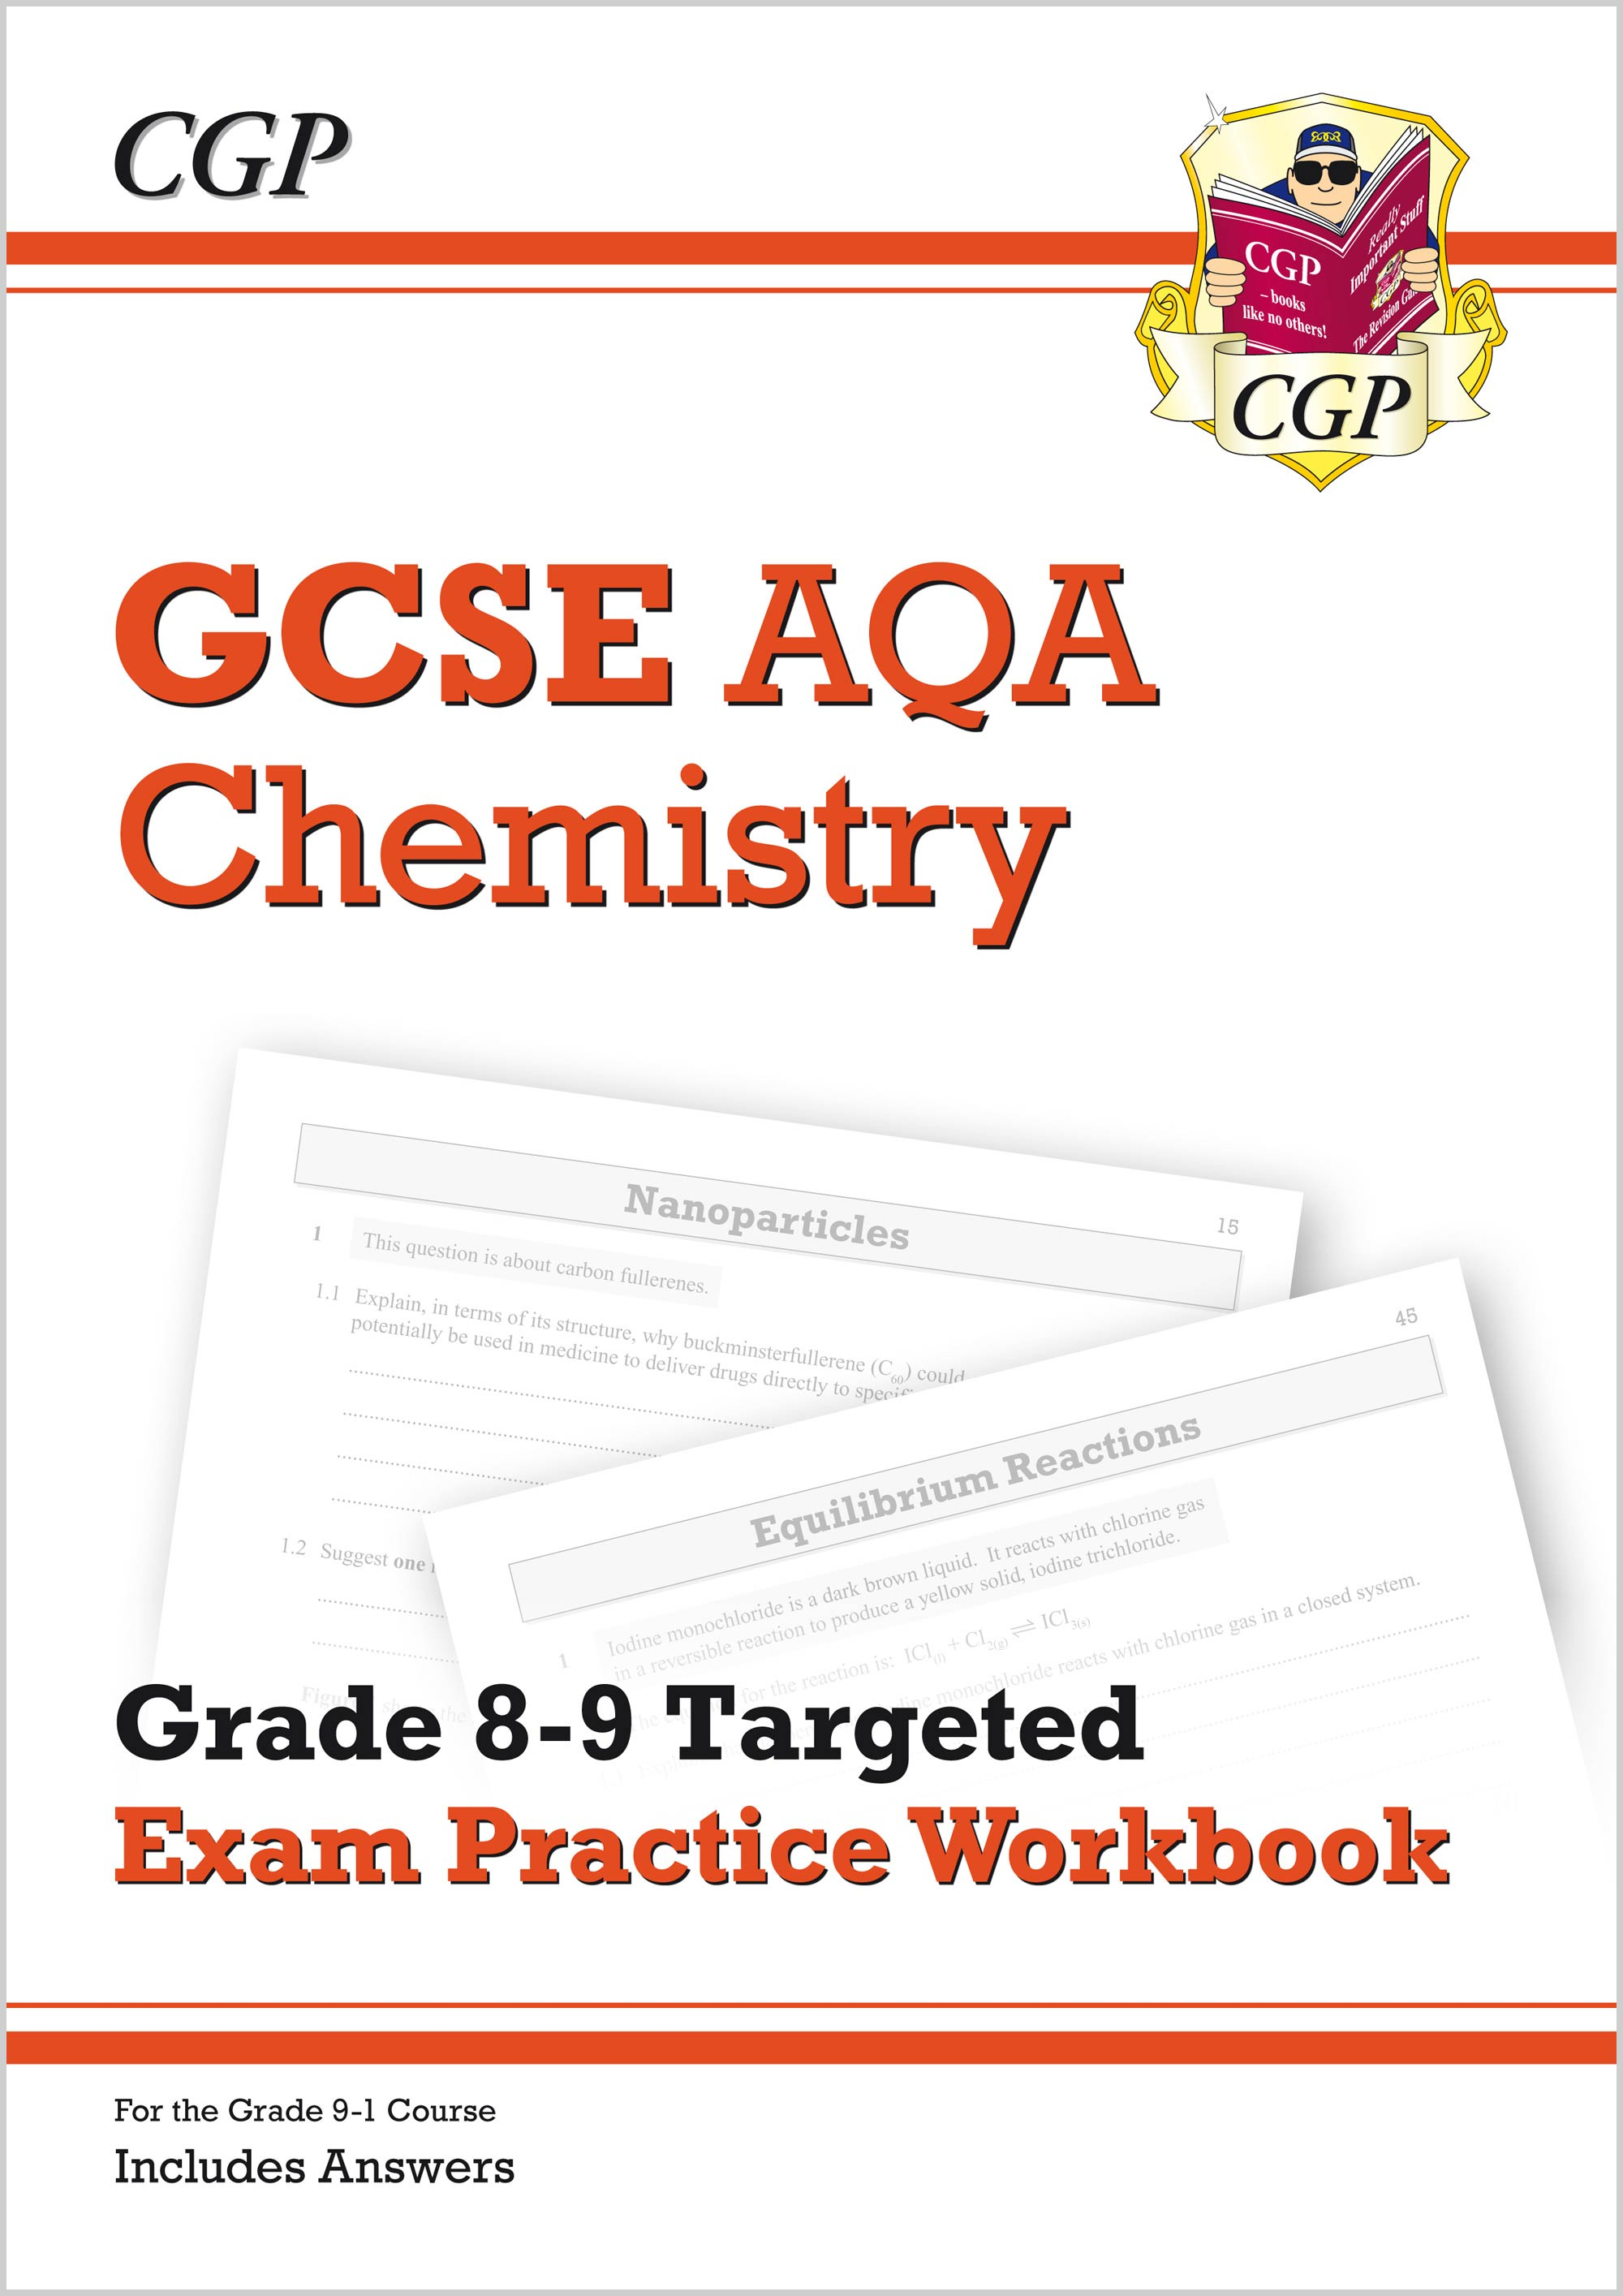 CA9Q41 - GCSE Chemistry AQA Grade 8-9 Targeted Exam Practice Workbook (includes Answers)